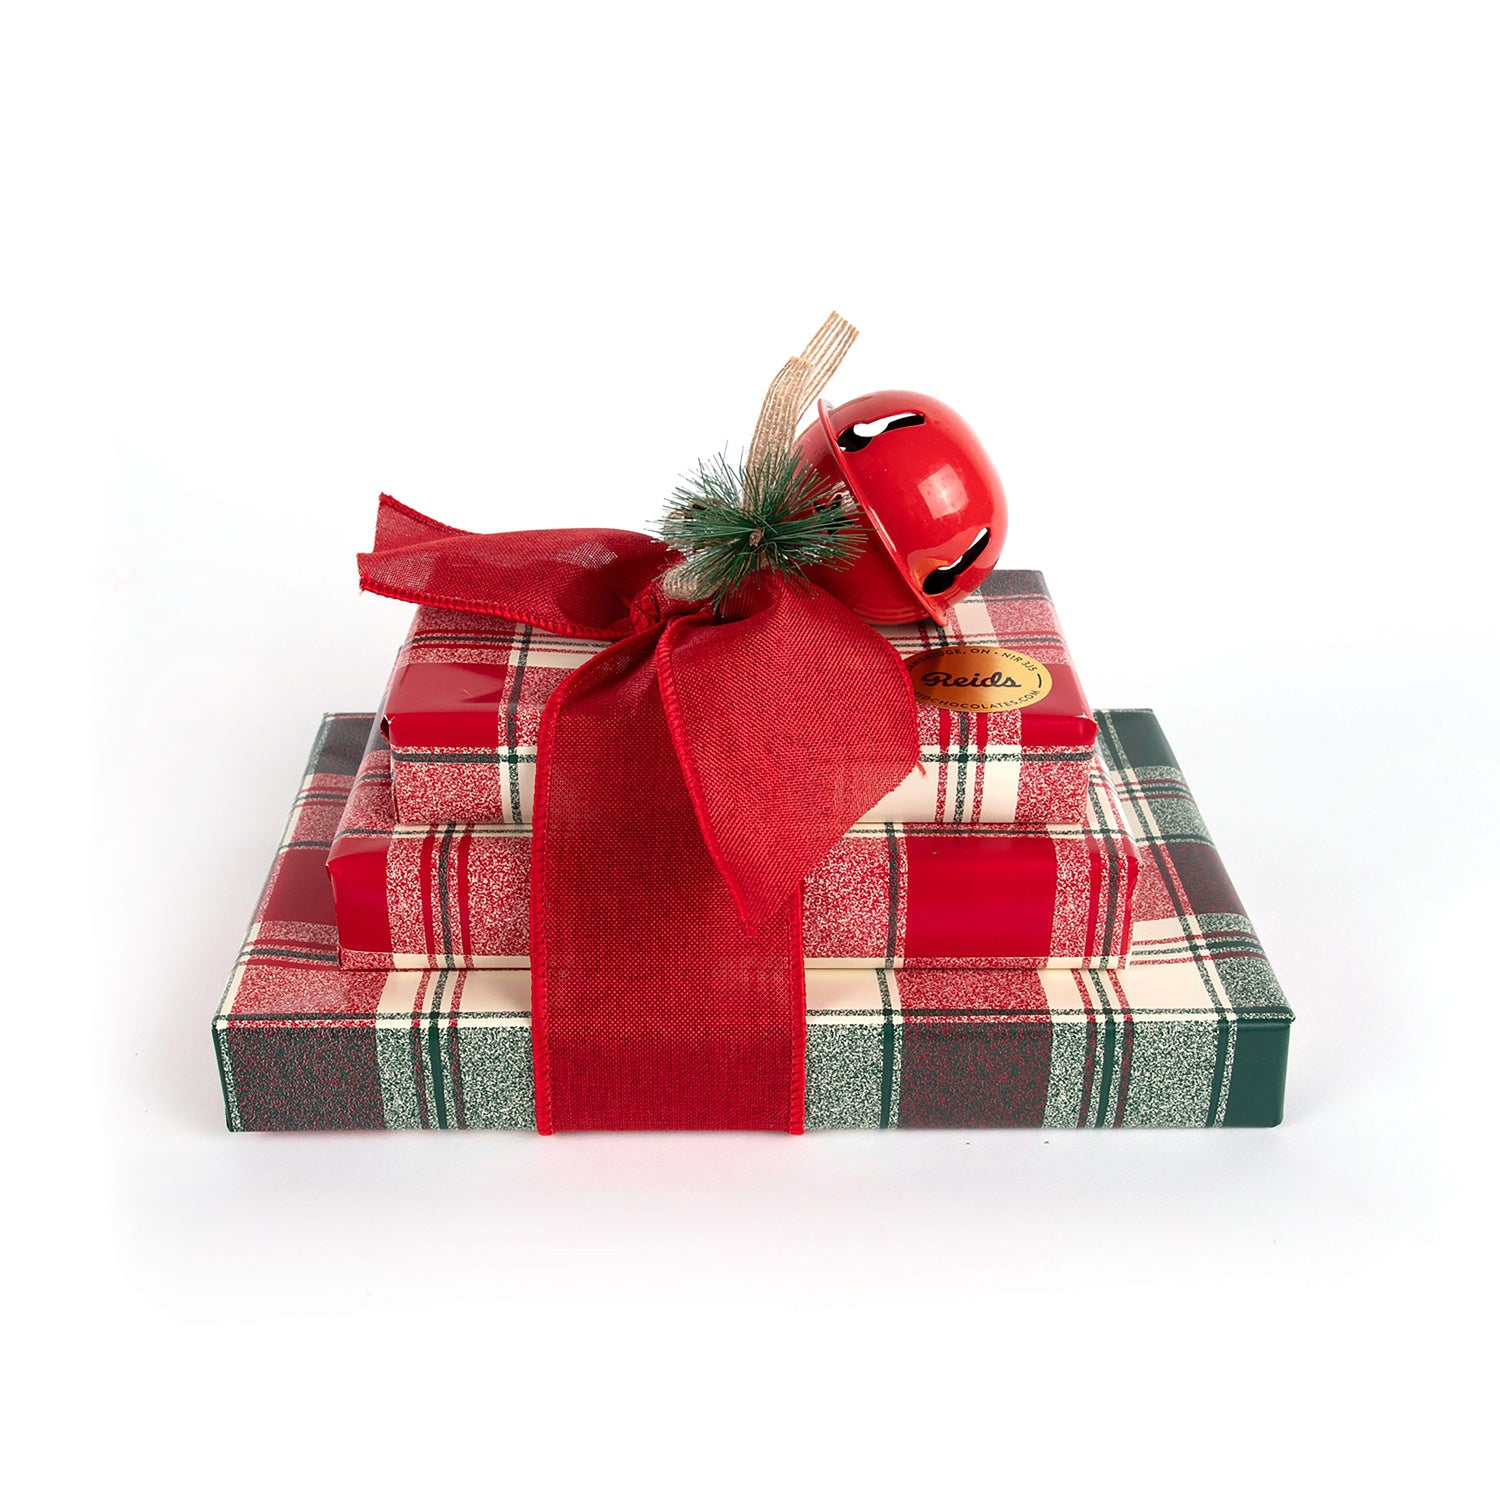 A tour of our bestsellers featuring 1/2 lb fancy mixed nuts, 1/2 lb tortoises, and 1 lb assorted chocolates, wrapped for the holidays in a plaid wrapping paper..